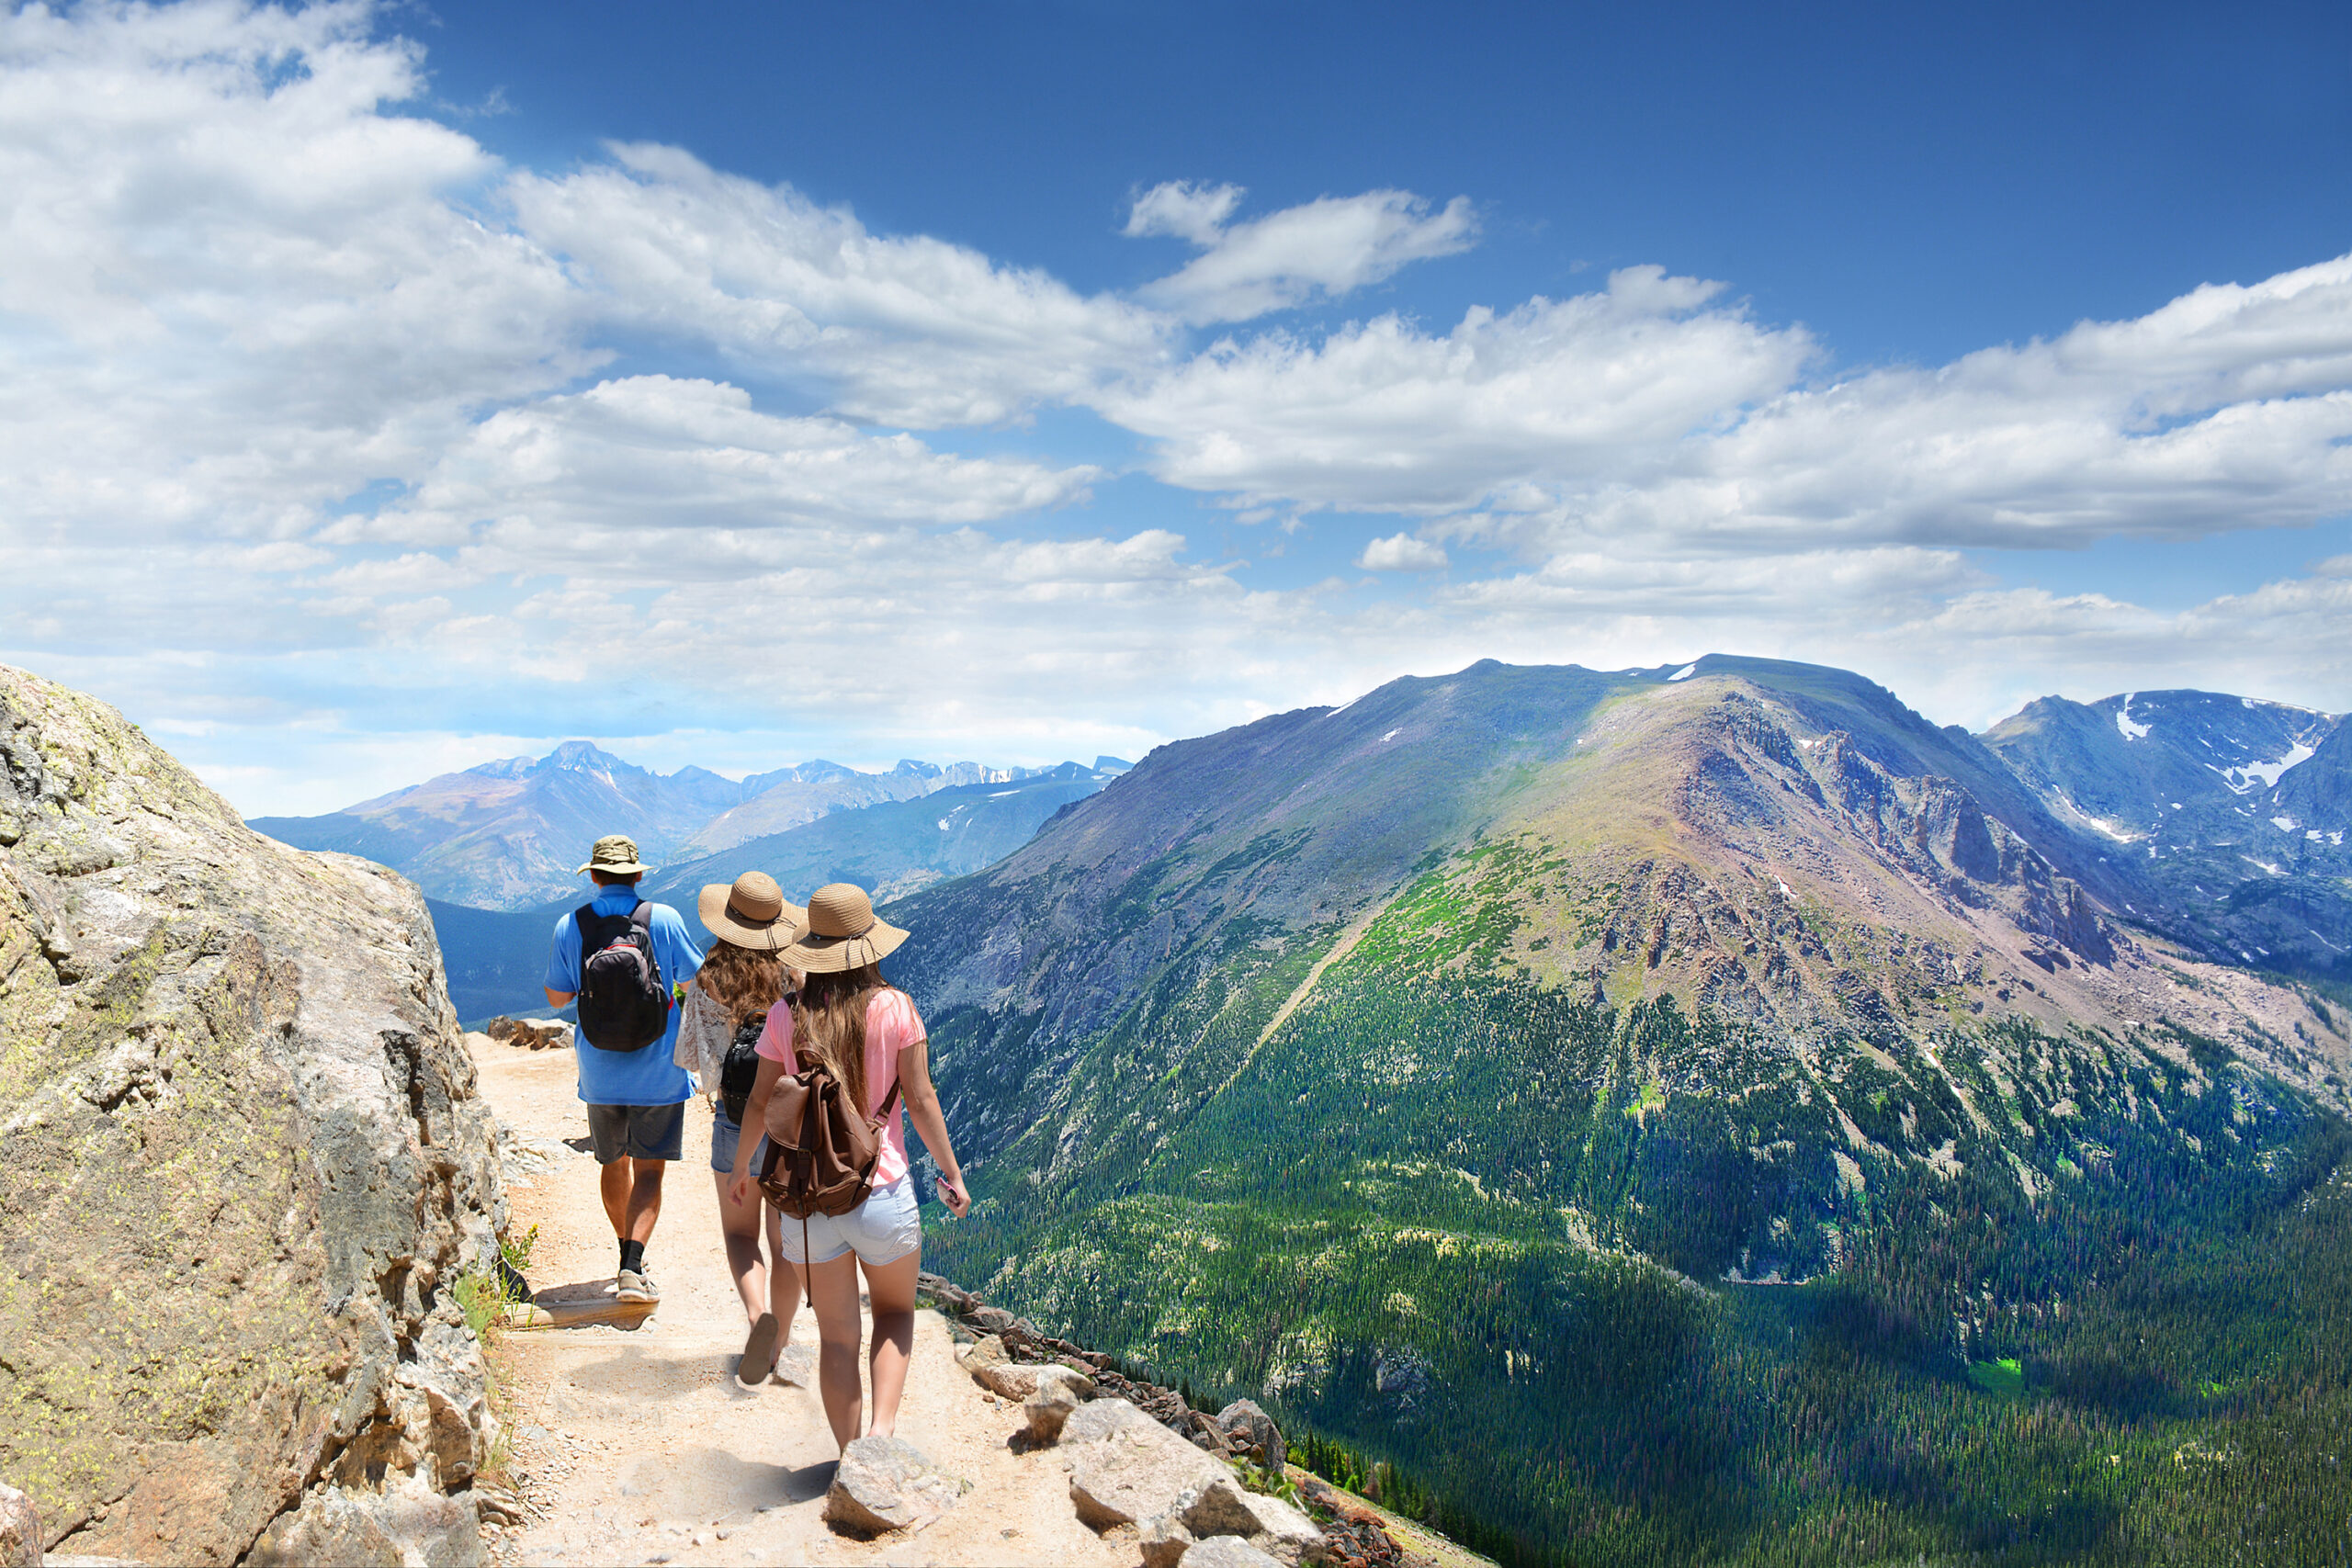 These are the most scenic hikes in Colorado